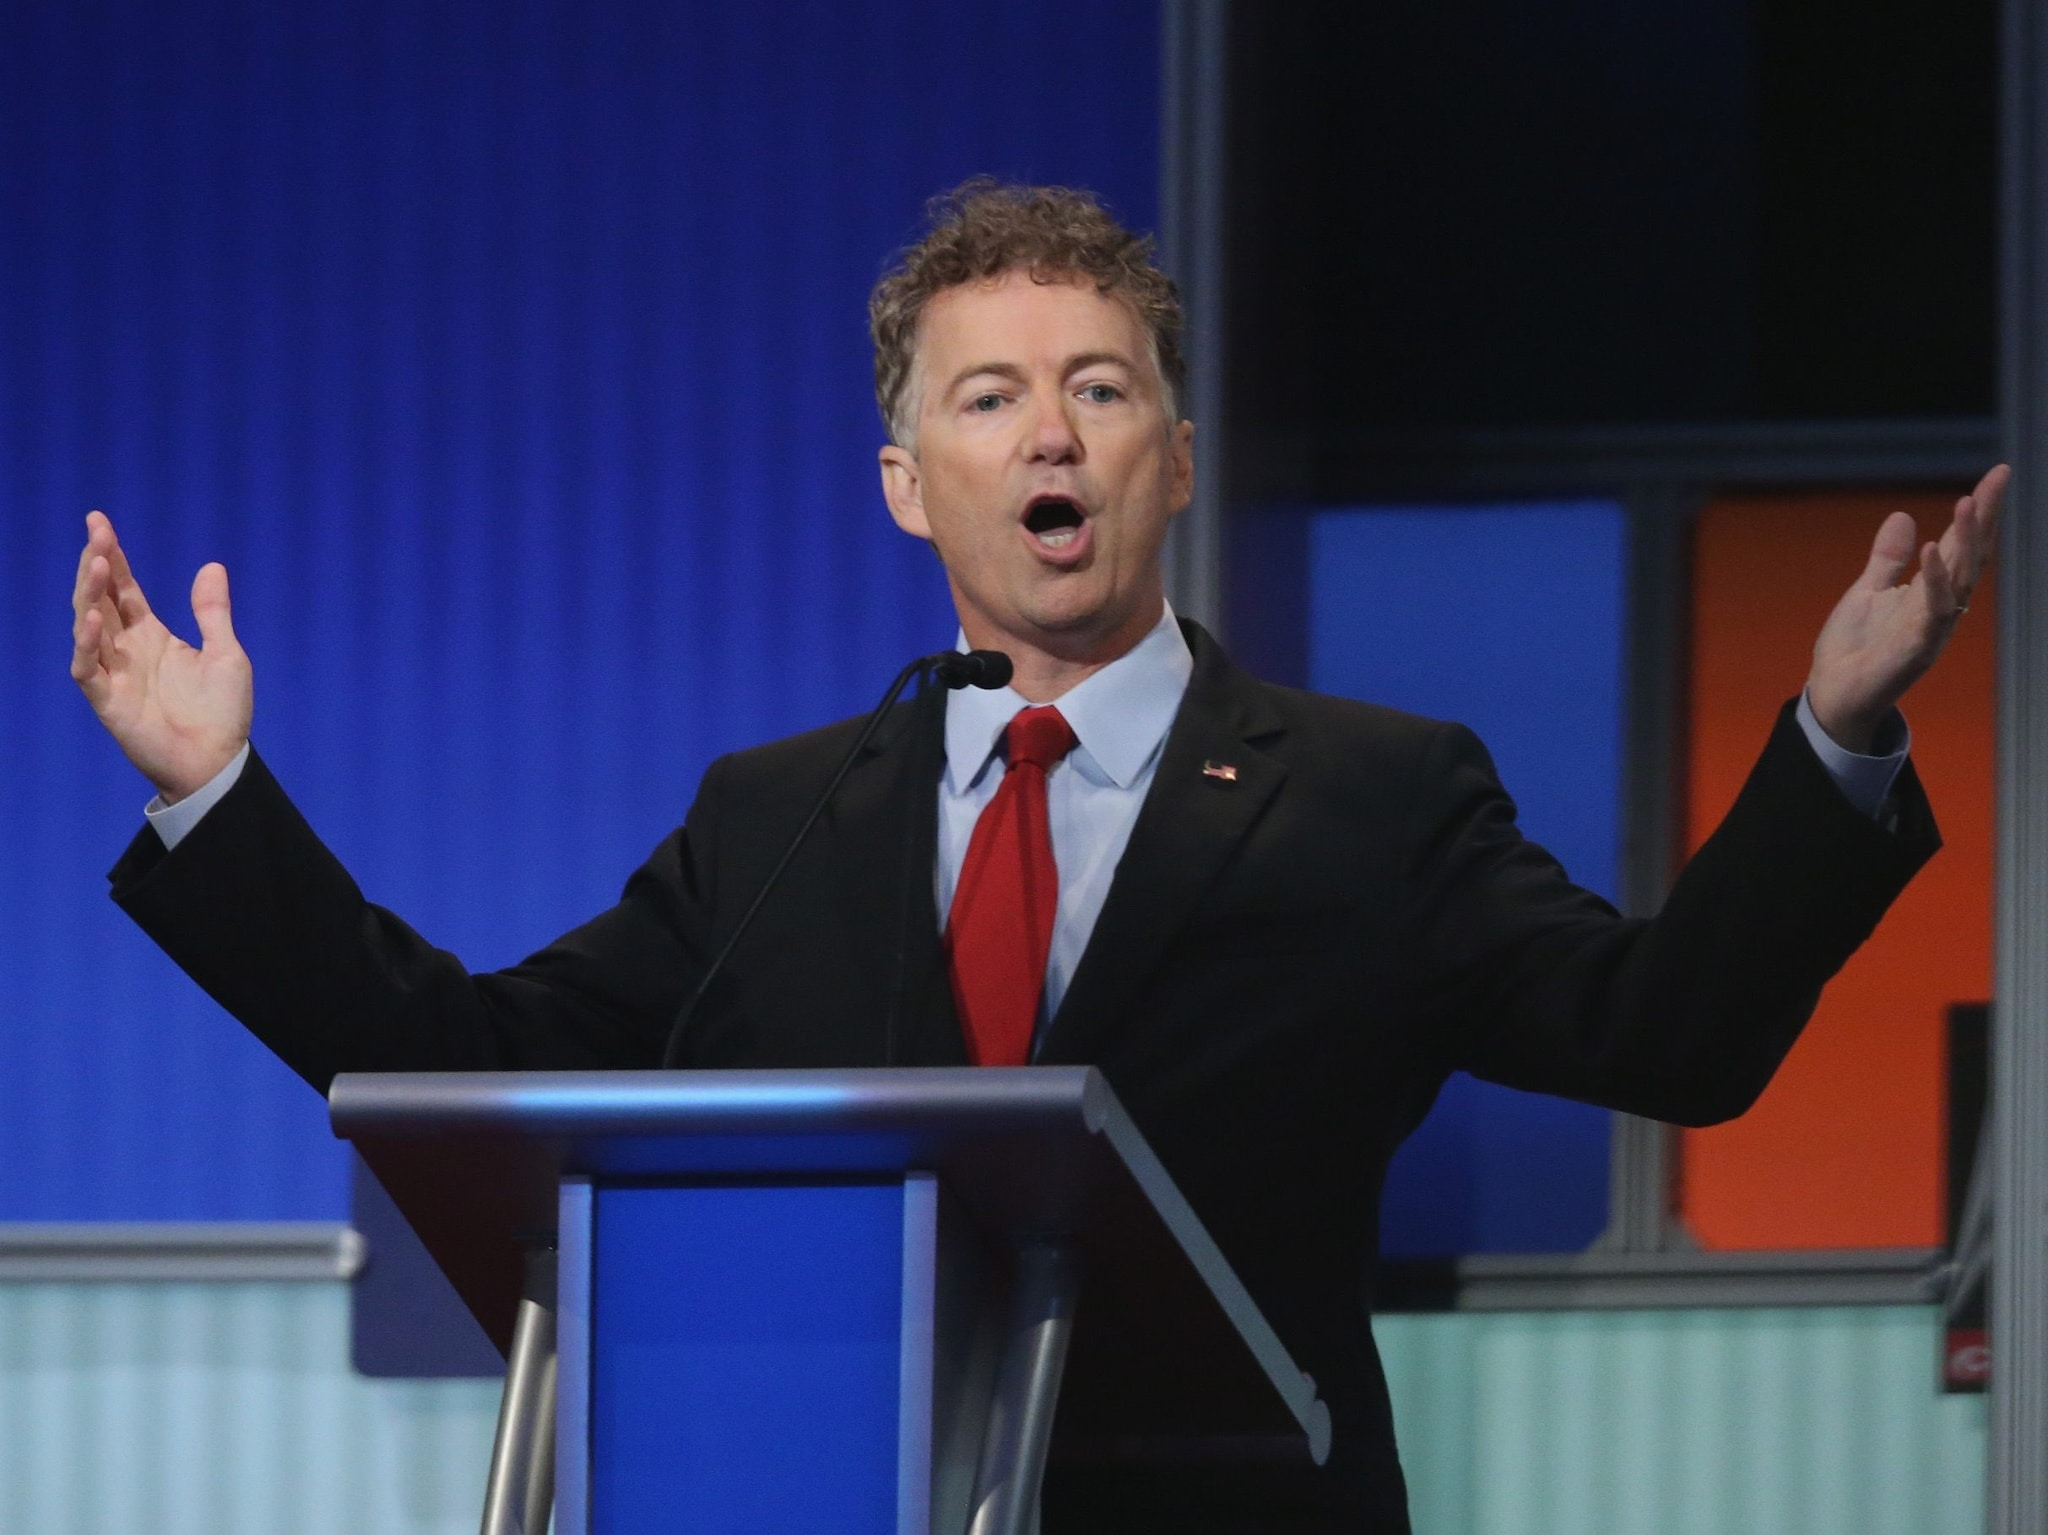 Kentucky Sen. Rand Paul speaks at the first Fox News Republican Party prime-time debate Thursday night. (Photo: Getty)